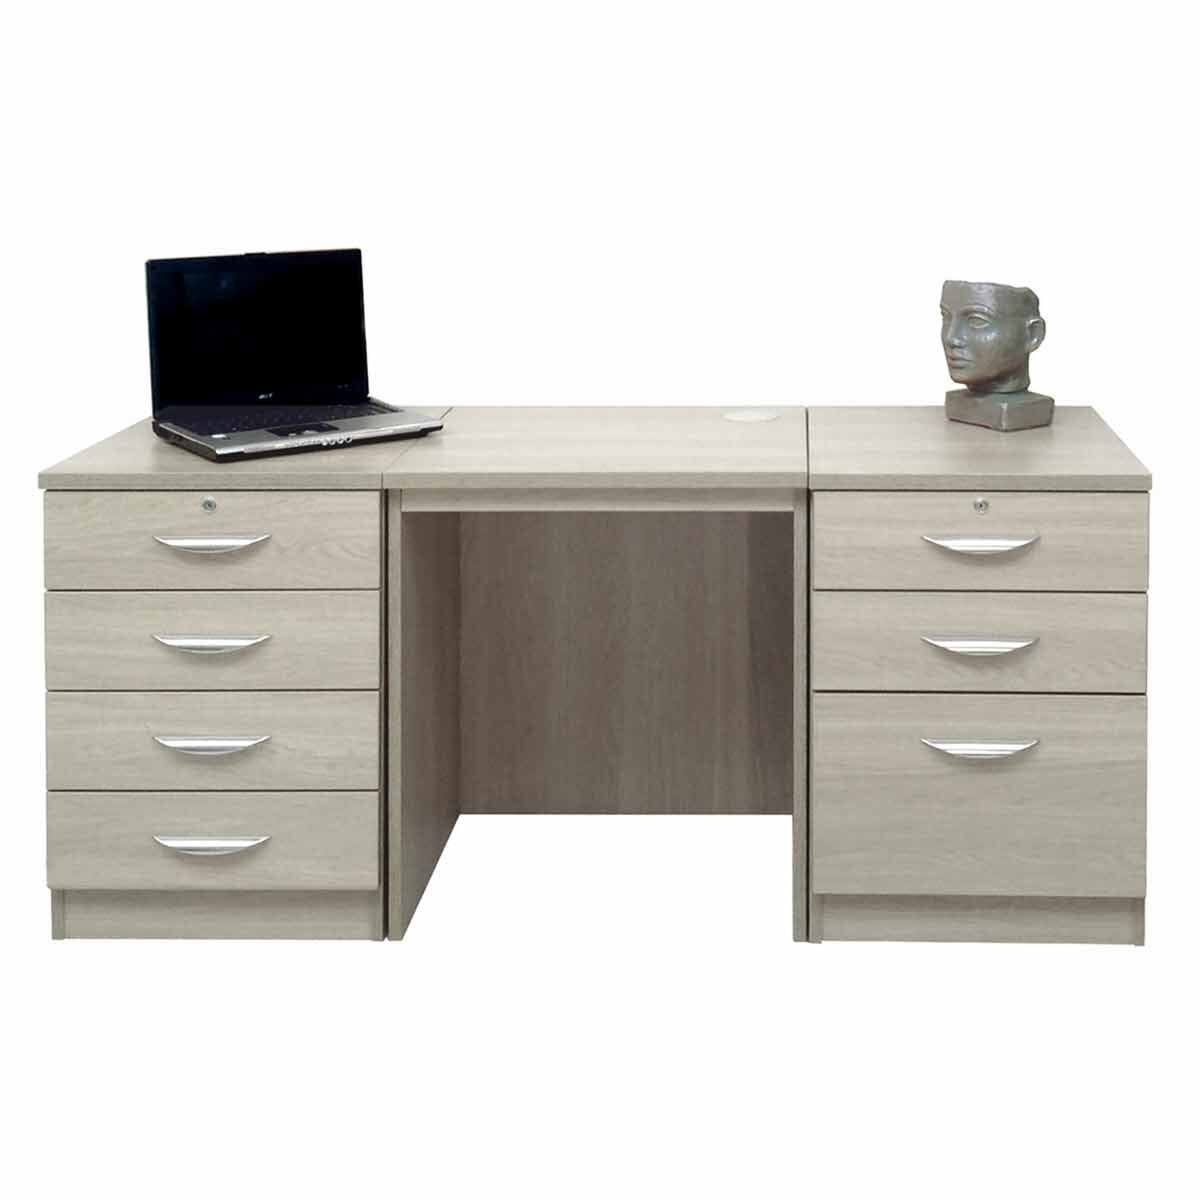 R White Home Office Furniture Desk Set With Double Drawers Grey Nebraska